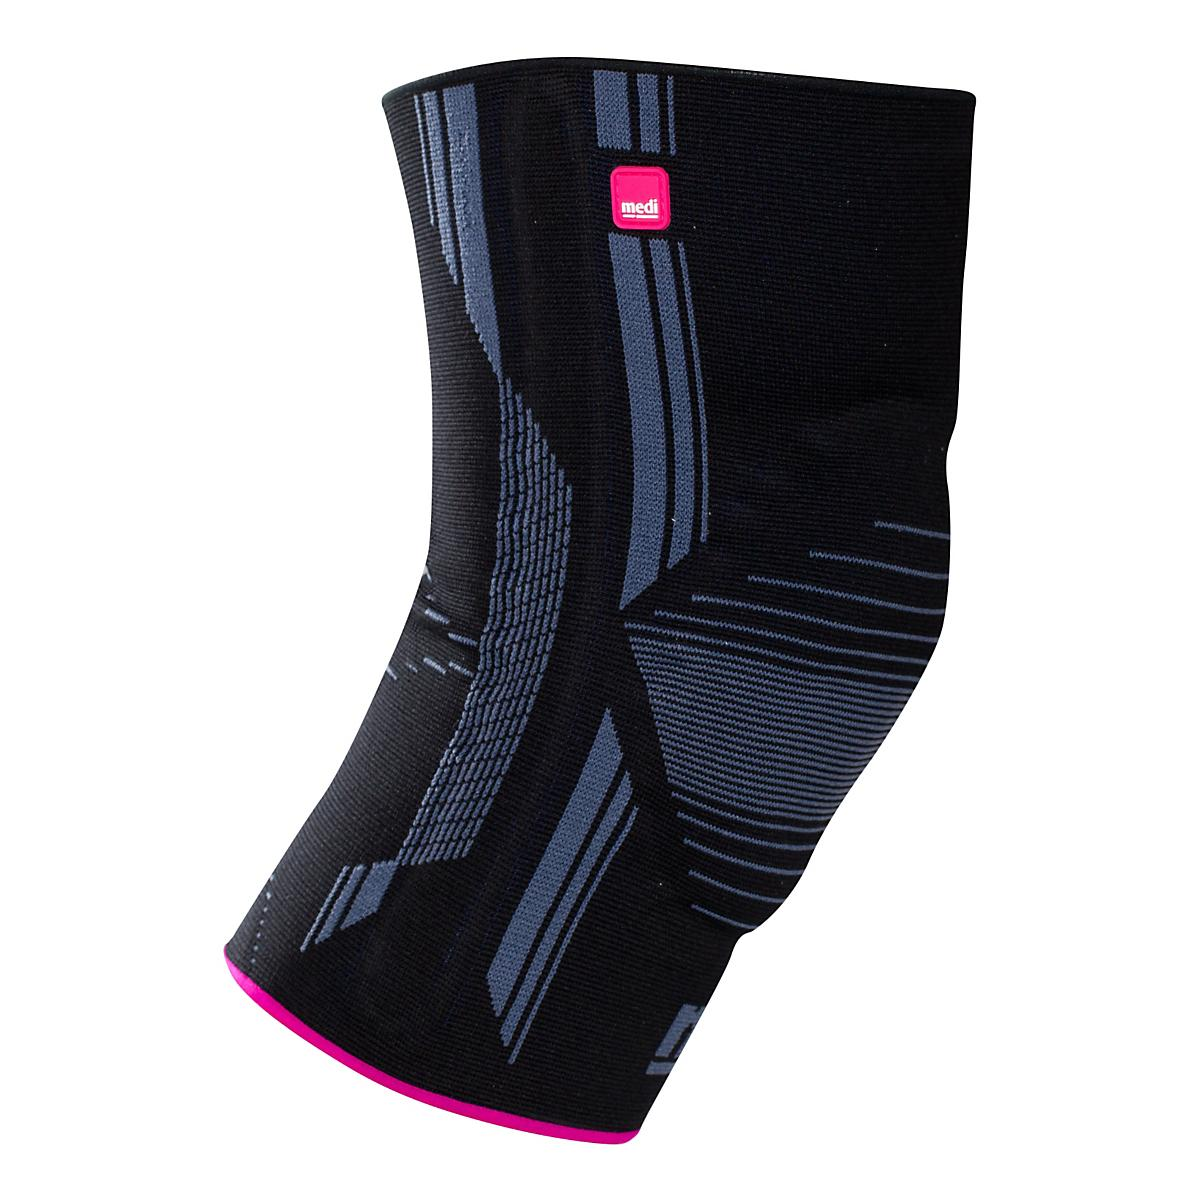 c9a6ab4032 CEP Rx Knee Brace Injury Recovery at Road Runner Sports